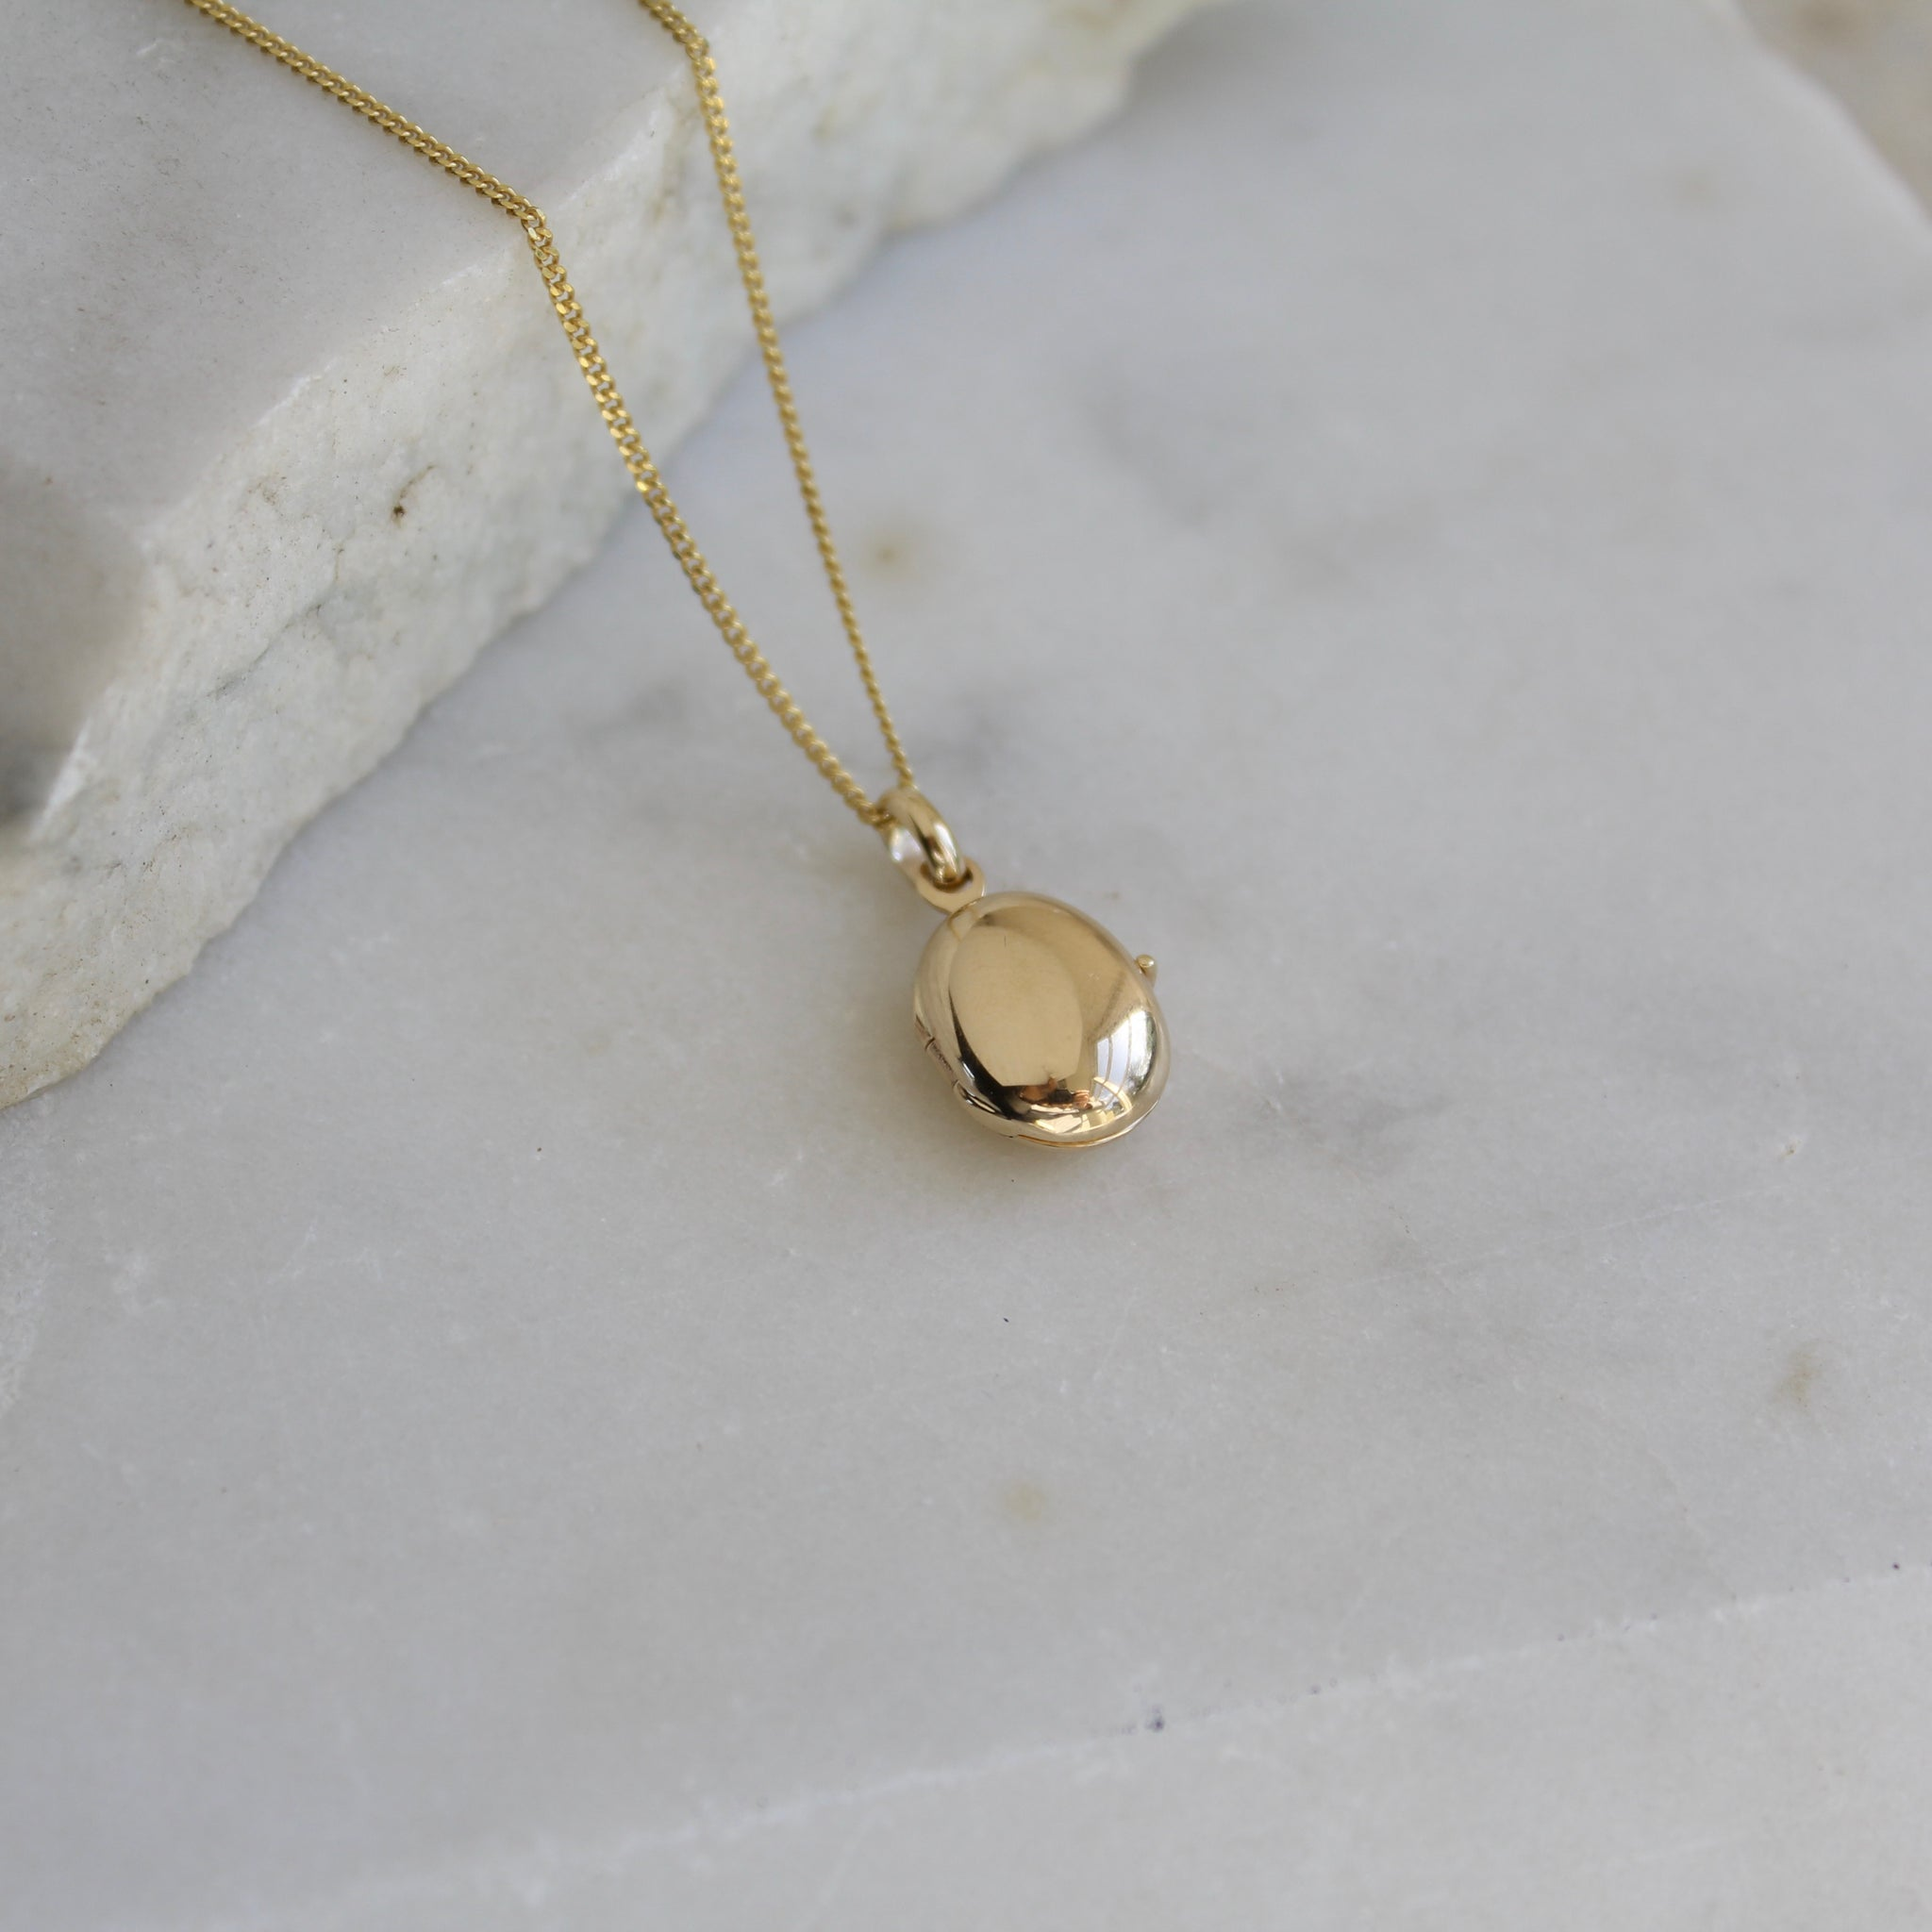 Pebble Locket Necklace 9ct Solid Gold